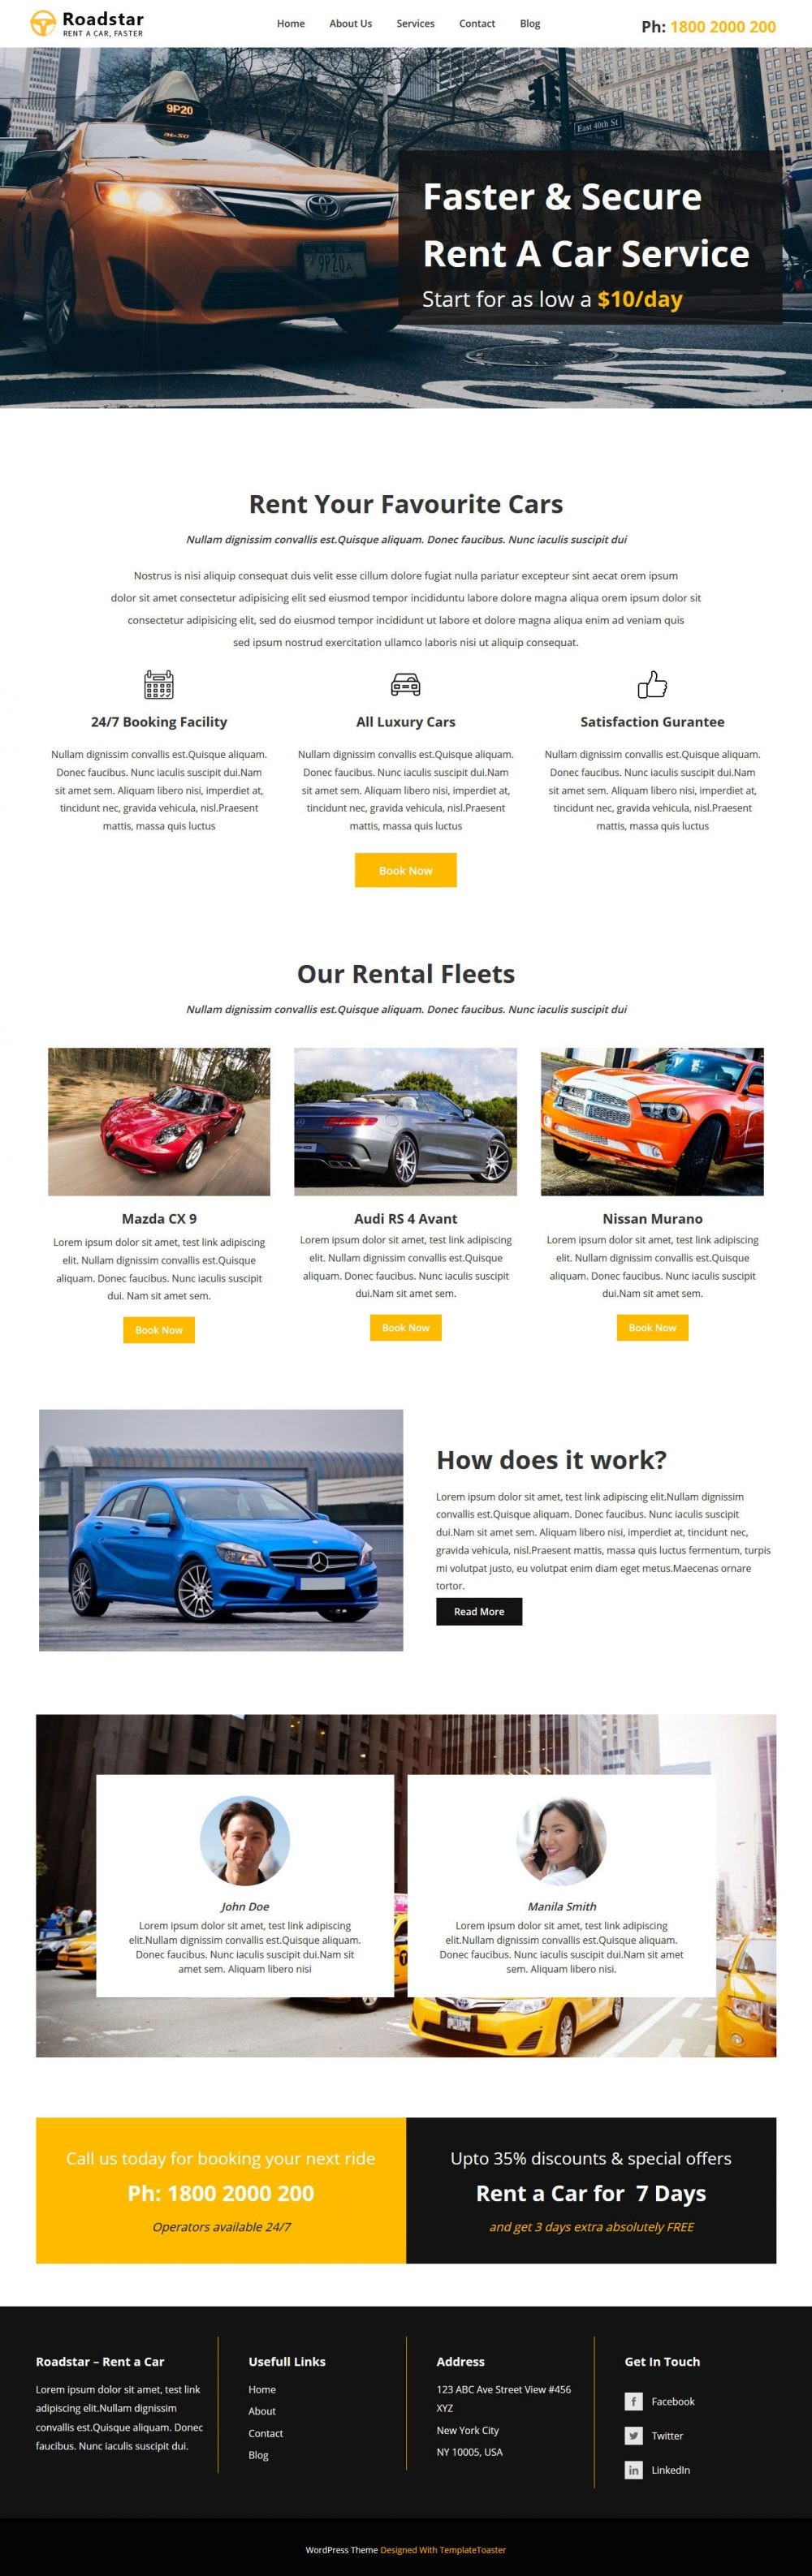 roadstar car rental services wordpress theme